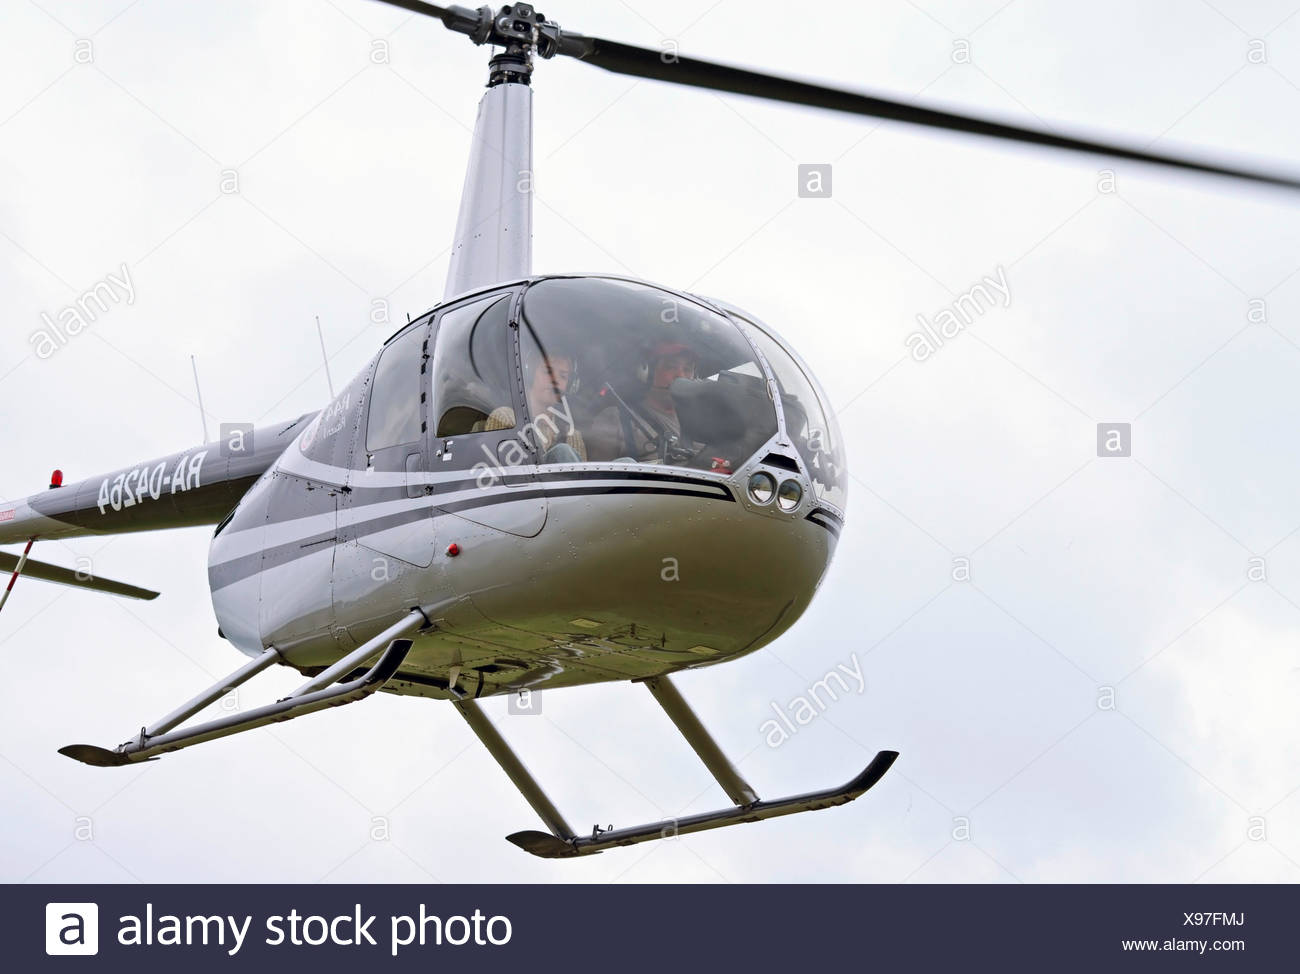 Closeup of R-44 helicopter - Stock Image